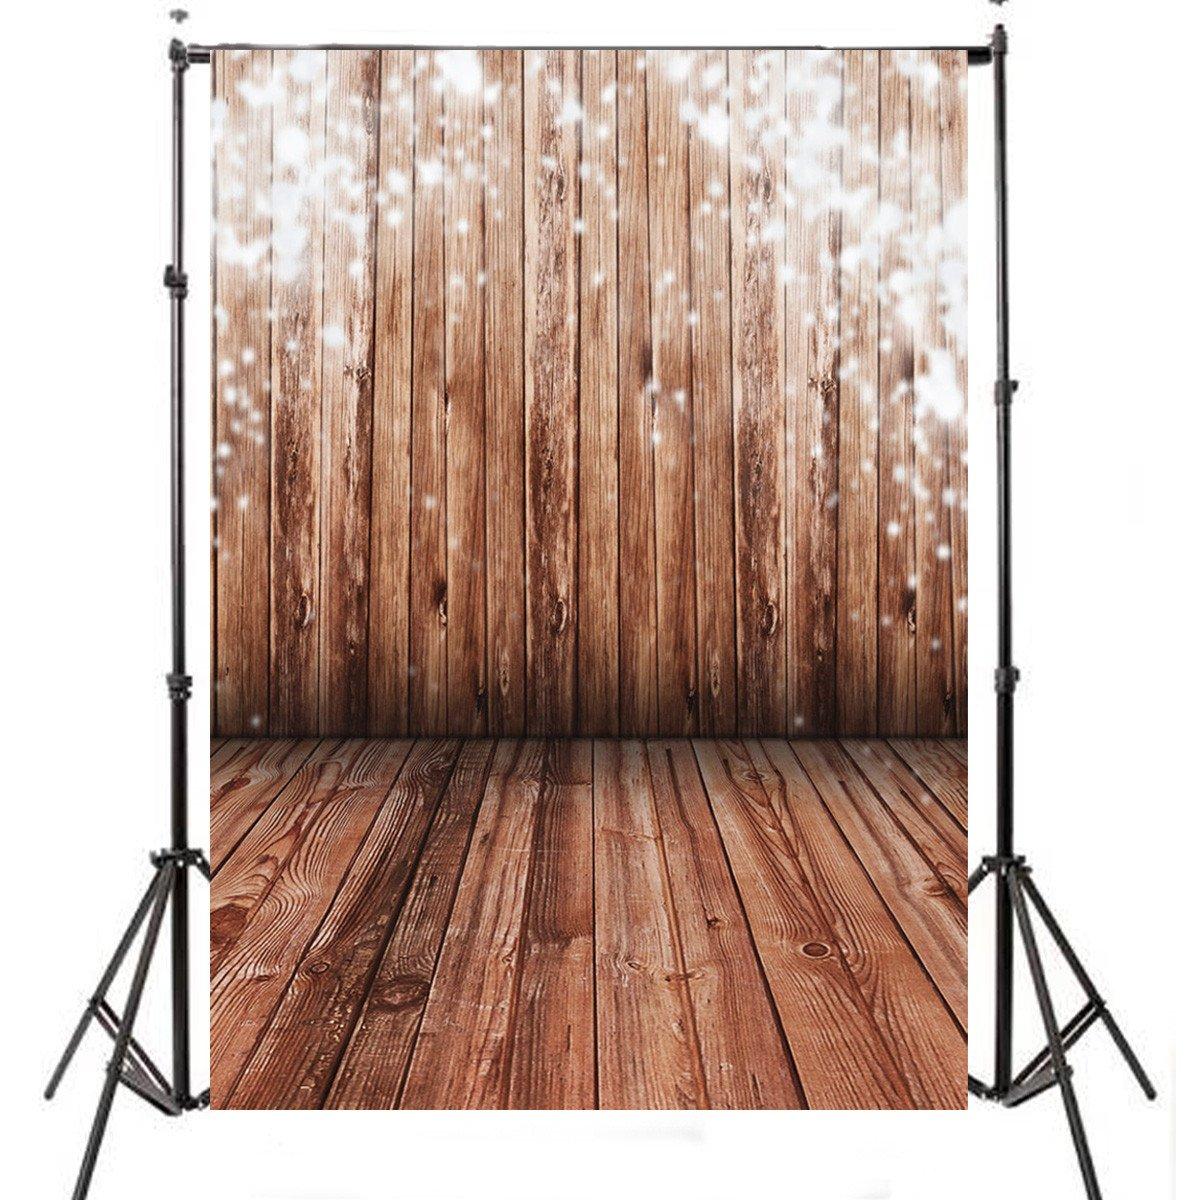 3x5ft flower wood wall vinyl background photography photo studio props - Amazon Com Mohoo 5x7ft Silk Photography Background Nostalgia Wood Floor Pattern Photography Collapsible Backdrop Studio Props Updated Material Camera